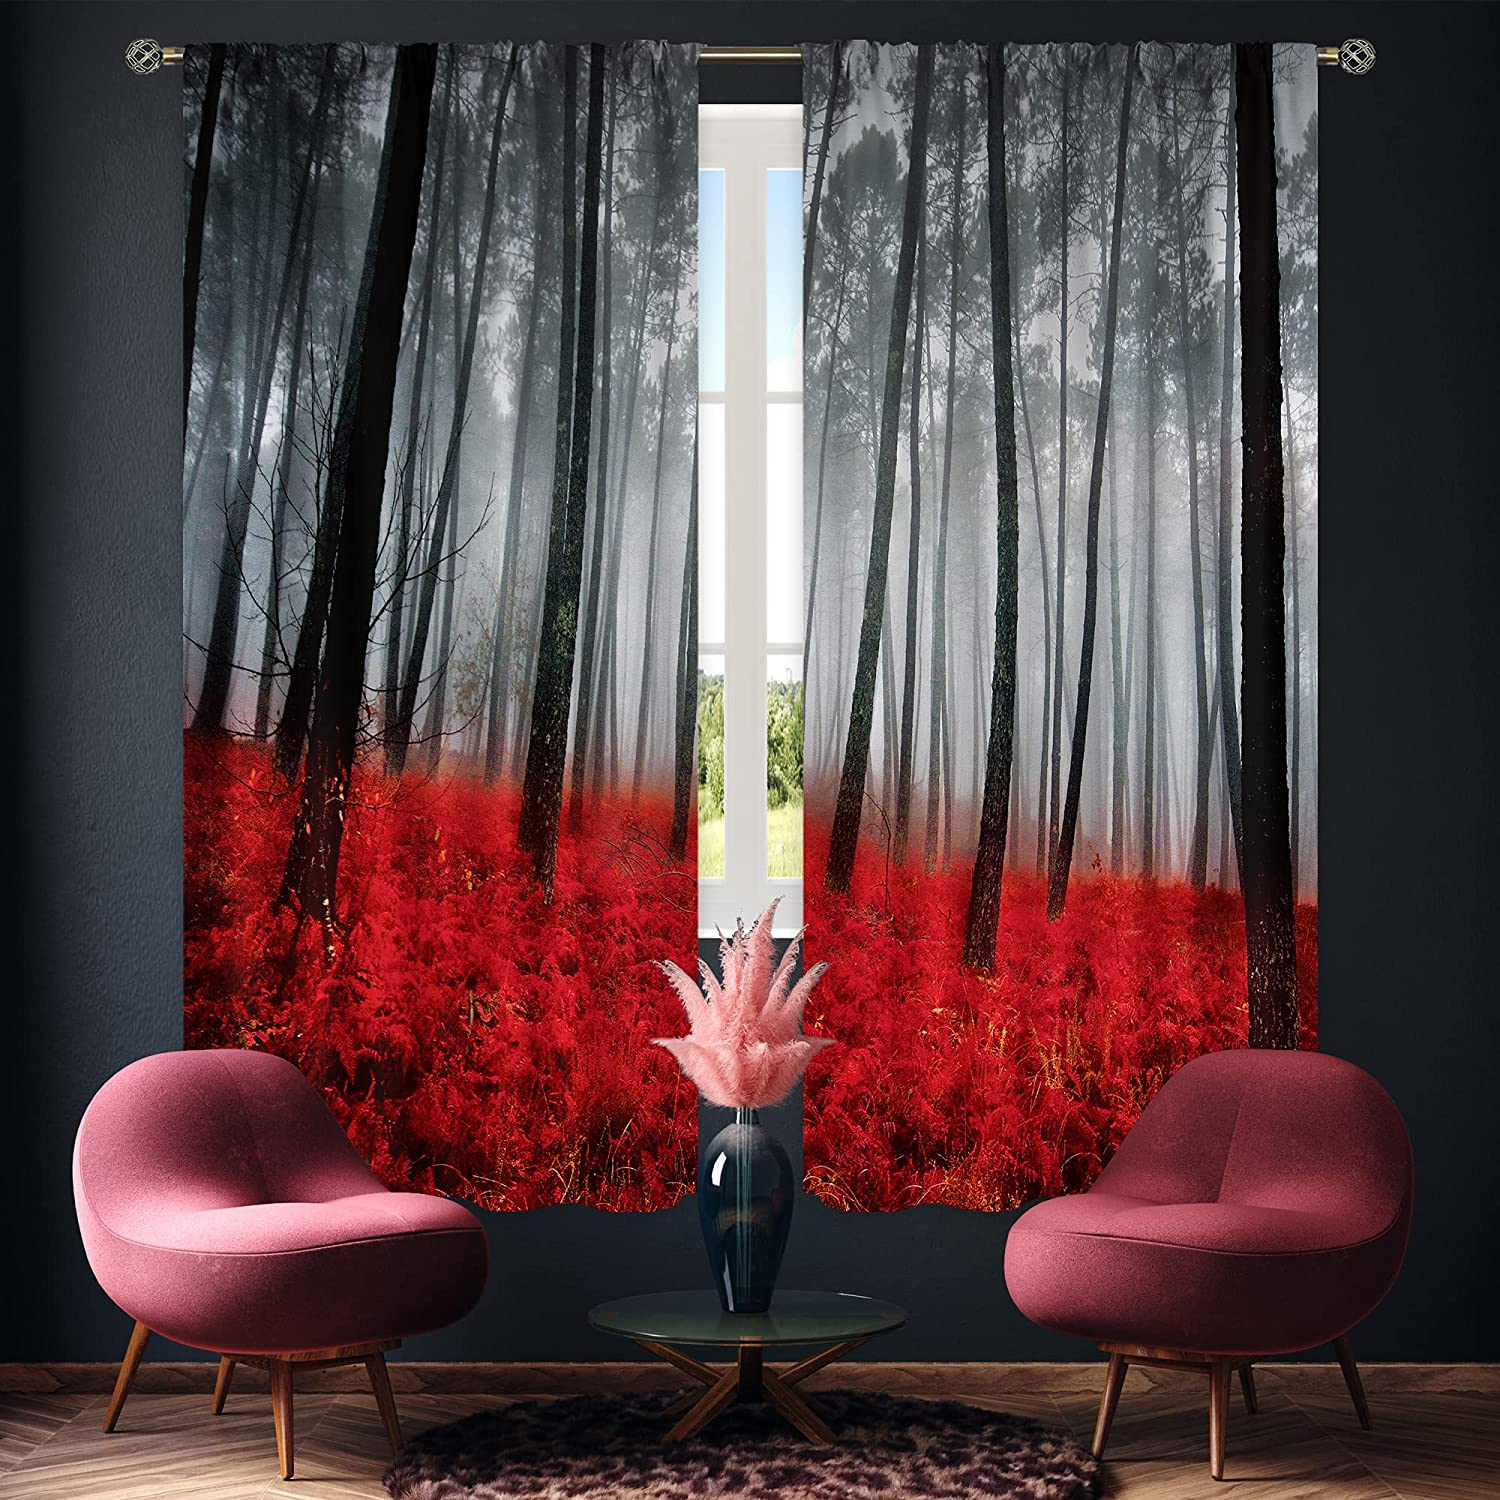 Cinbloo Black Red Forest Curtains Rod Pocket BurgundyTree Bedroom Decor Mysterious Foggy Scene Floral Modern Art Printed Gothic Living Room Window Drapes Treatment Fabric 2 Panels 42 (W) x 63(L) Inch